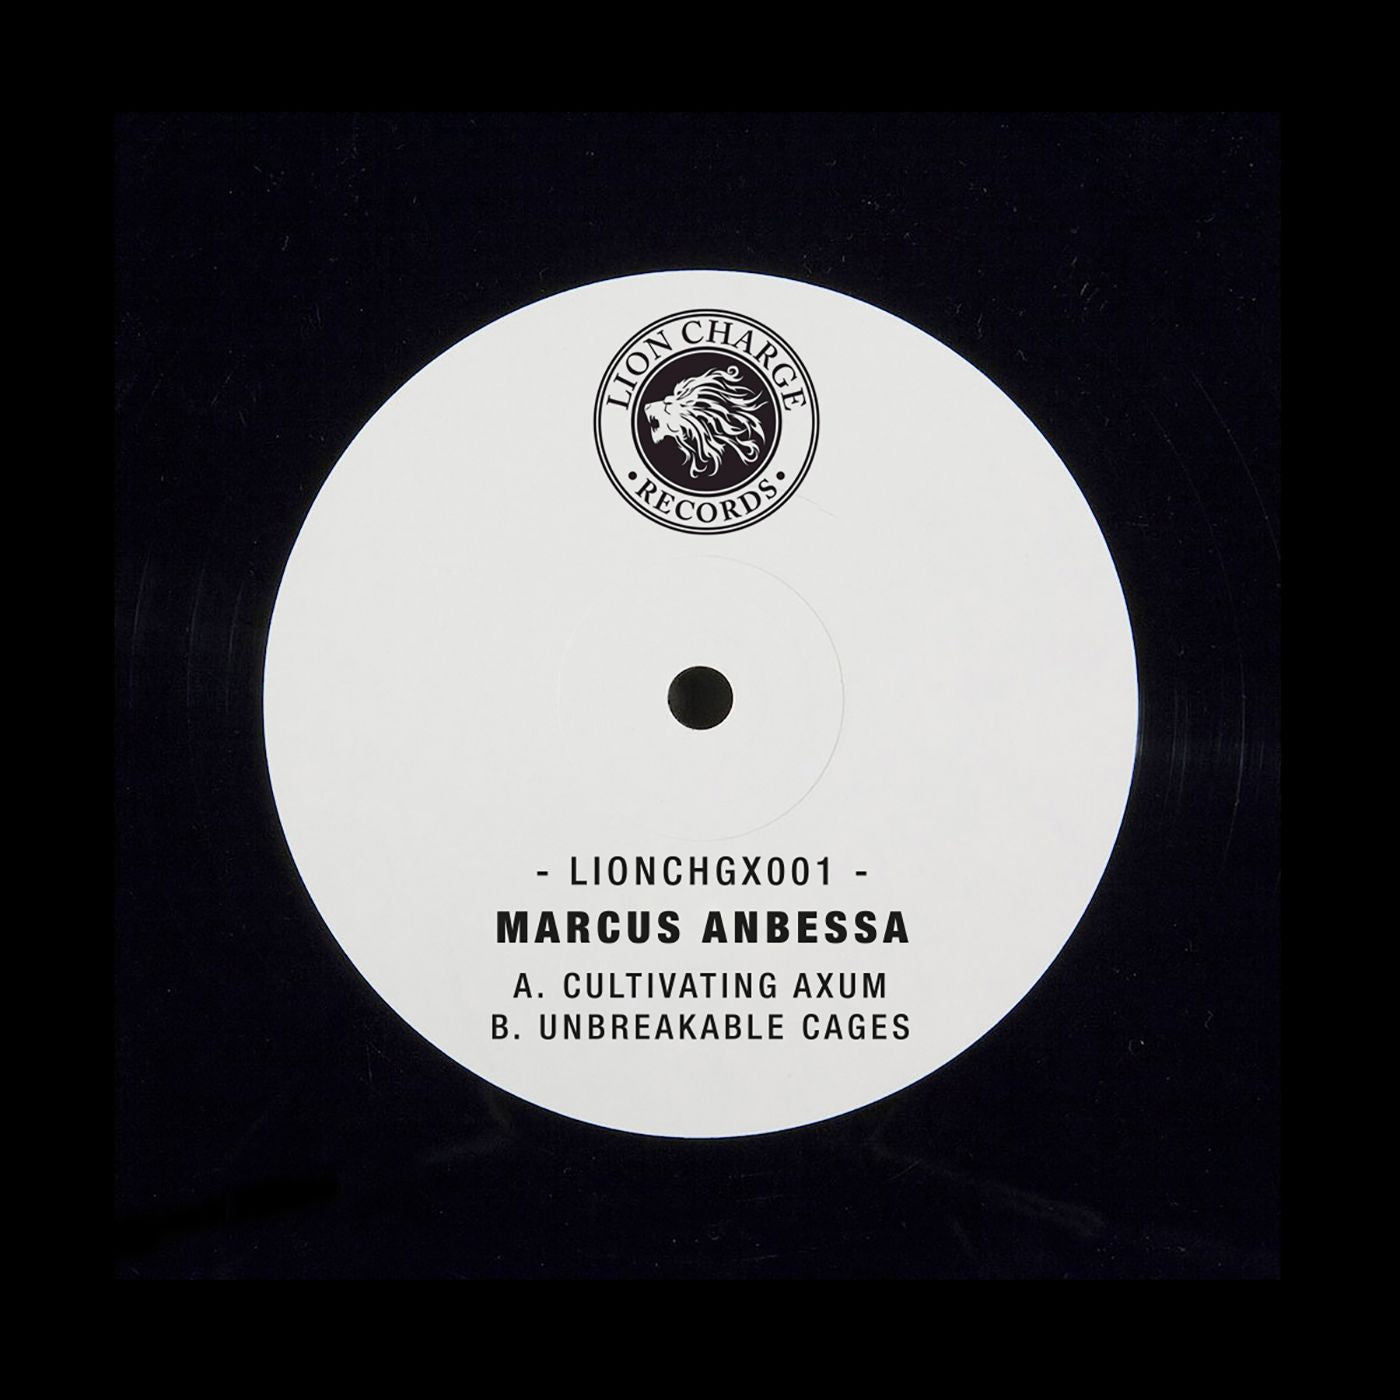 "Marcus Anbessa - Cultivating Axum / Unbreakable Cages [Hand-stamped 10""]"